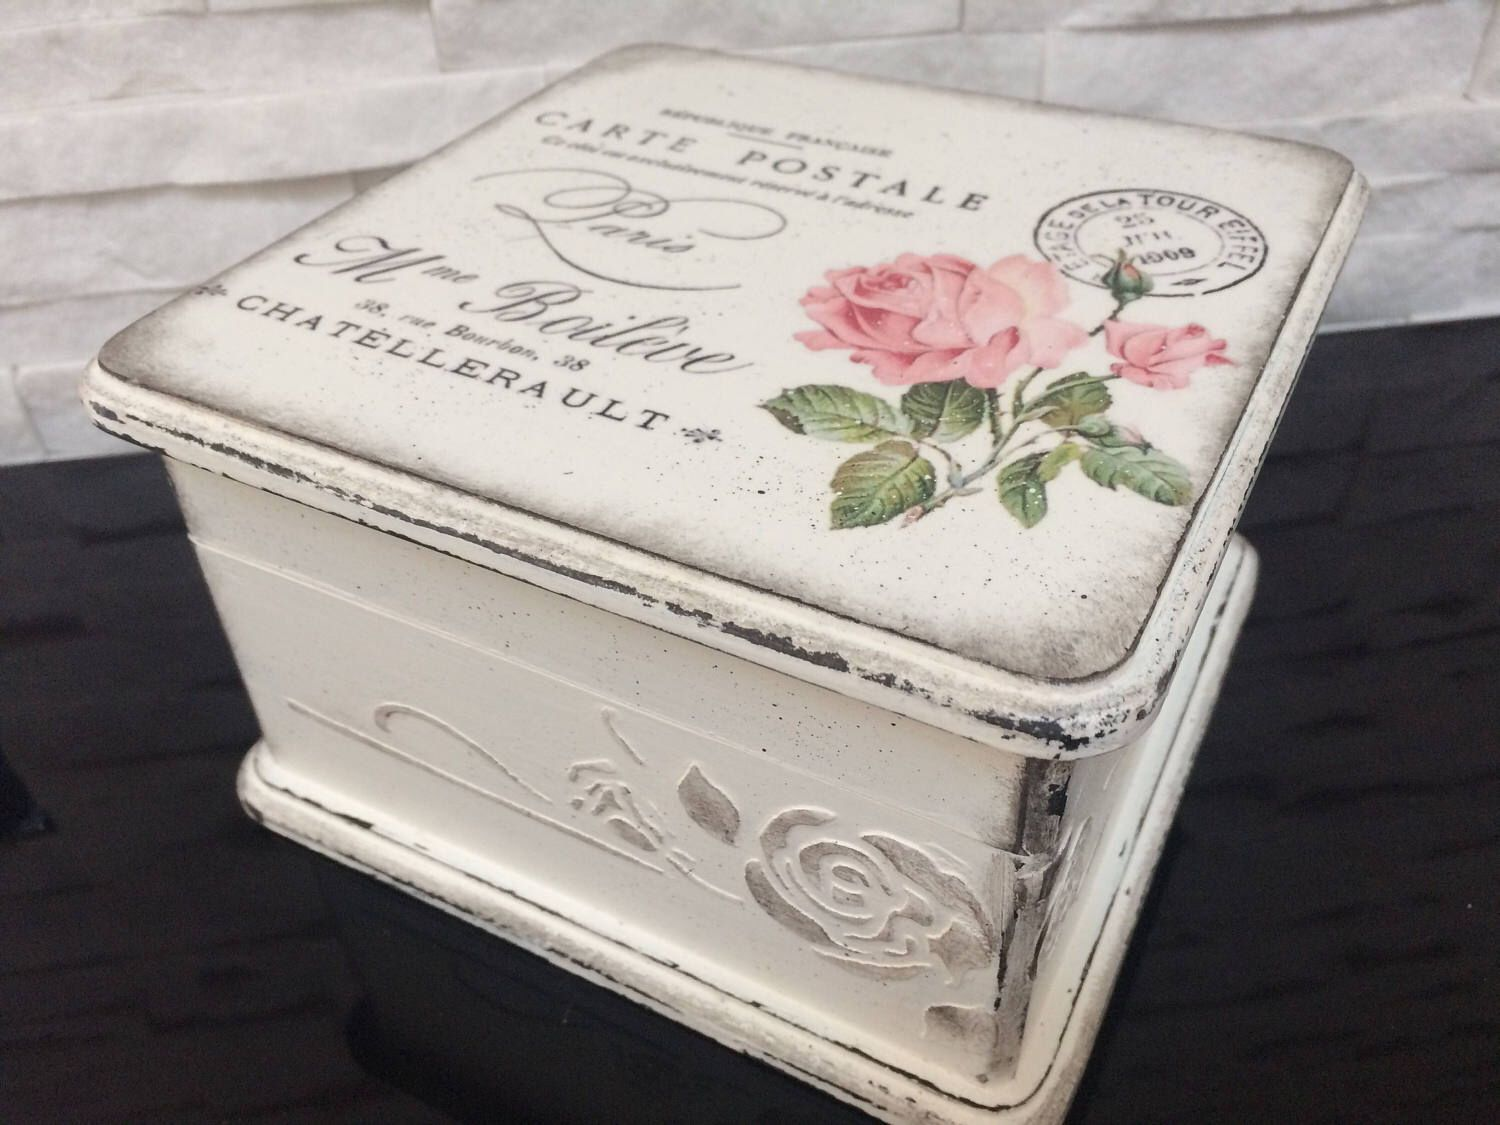 Vintage decorated box Gift for her Jeweler shabby chic Handmade wooden jeweler Wooden box with decoupage and hand paint